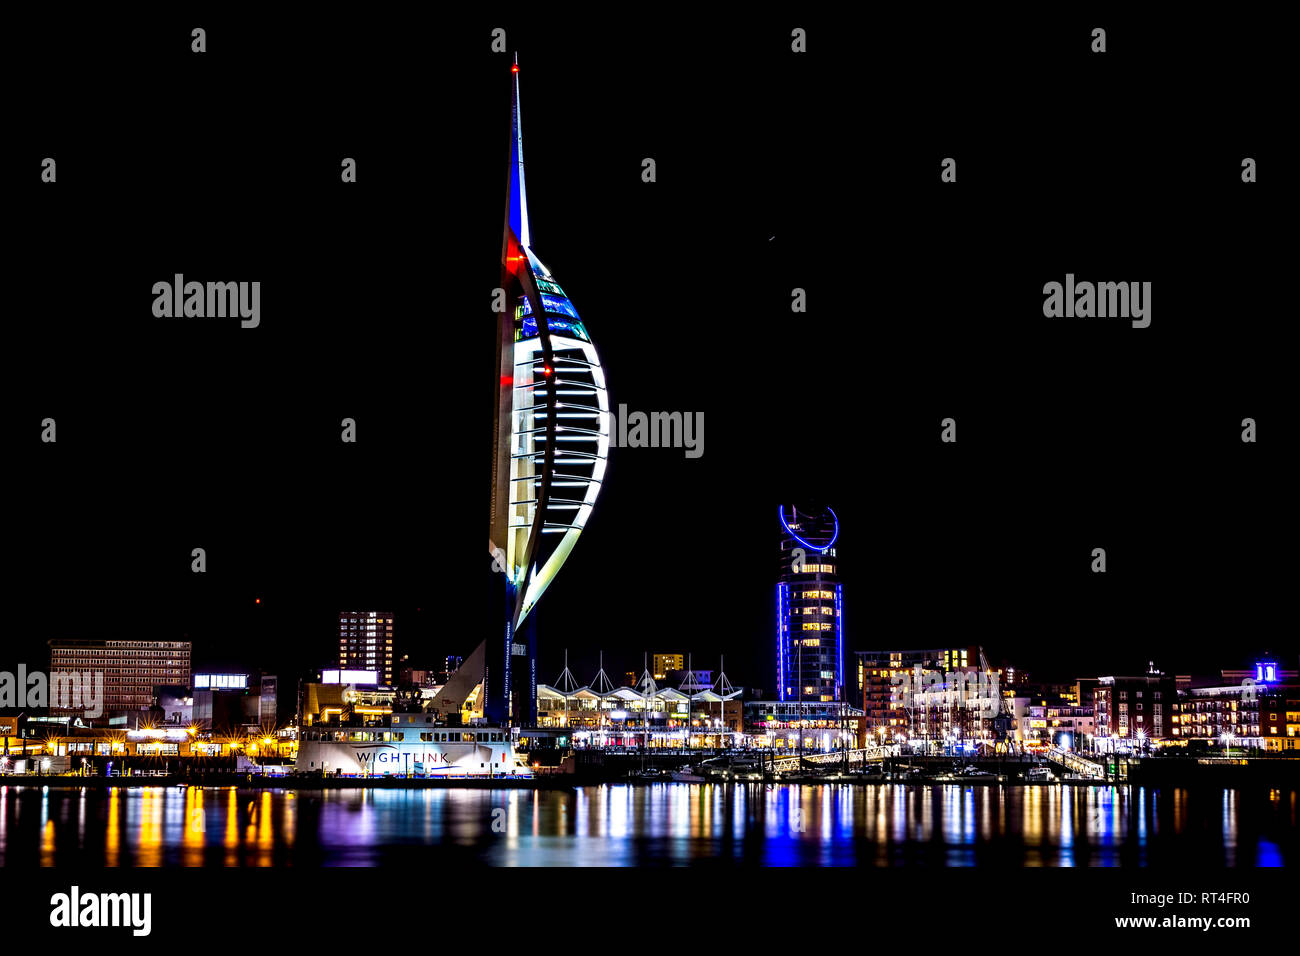 Spinnaker Portsmouth at night Stock Photo